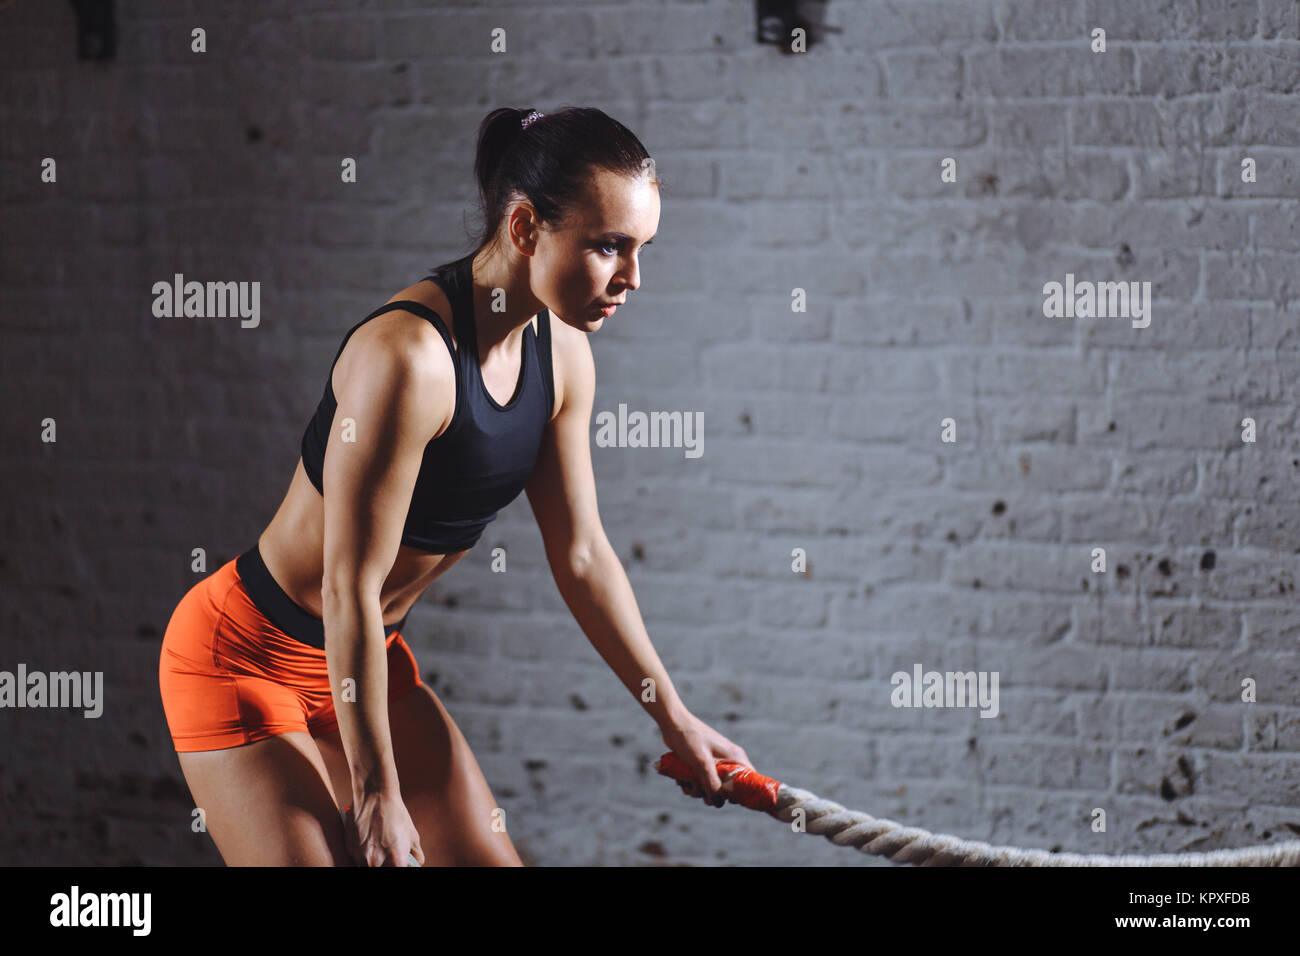 close up photo of Athletic woman doing battle rope exercises at gym - Stock Image